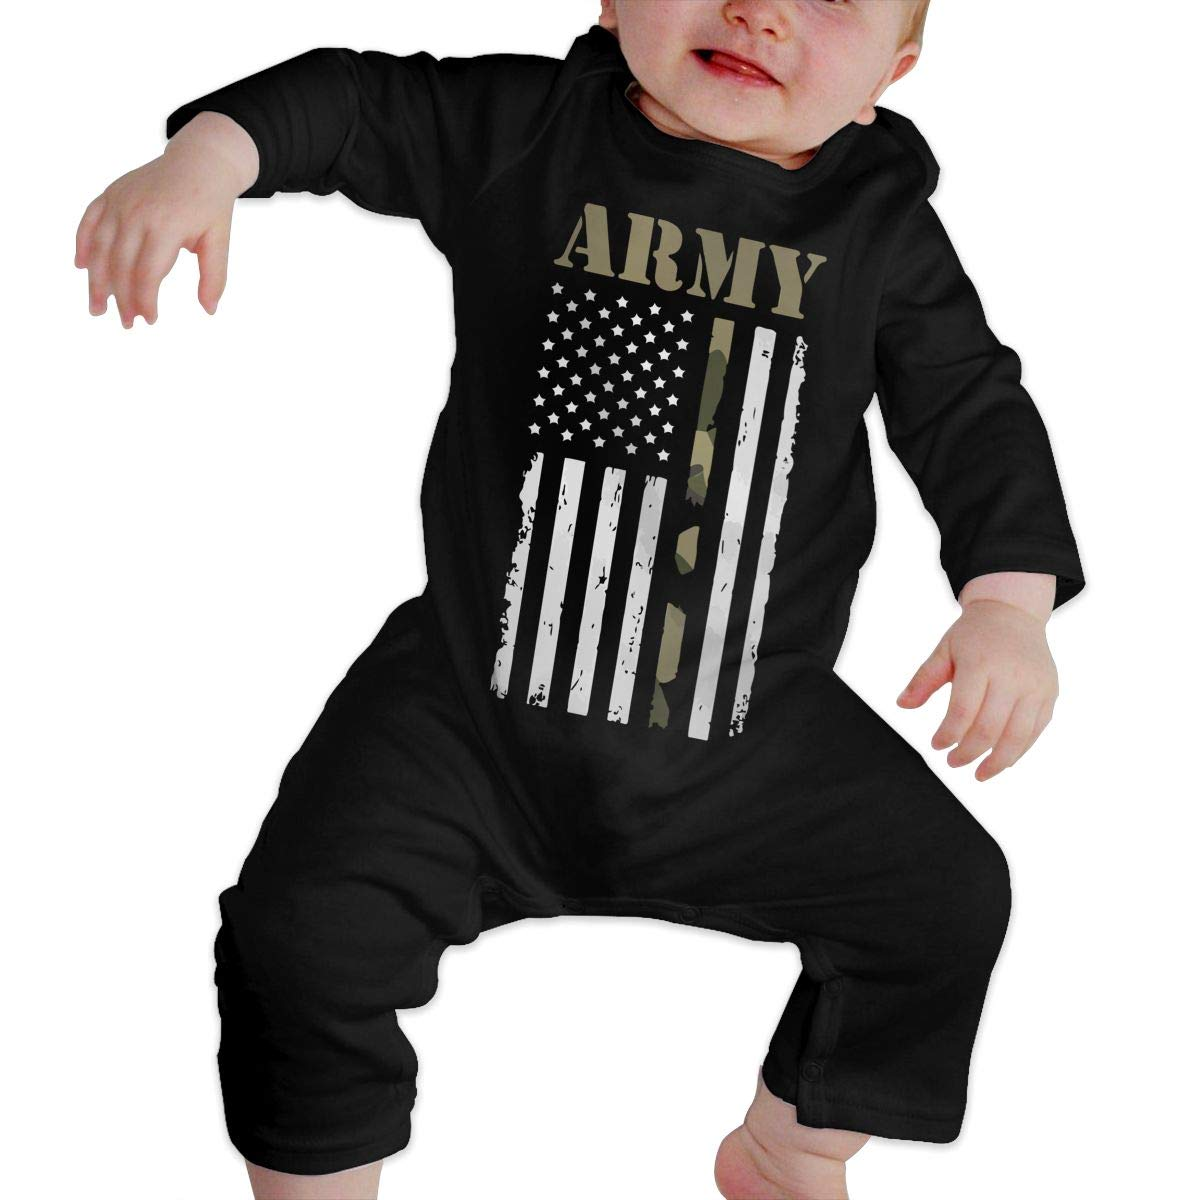 Soft USA Army Flag Onesies U99oi-9 Long Sleeve Cotton Rompers for Baby Girls Boys